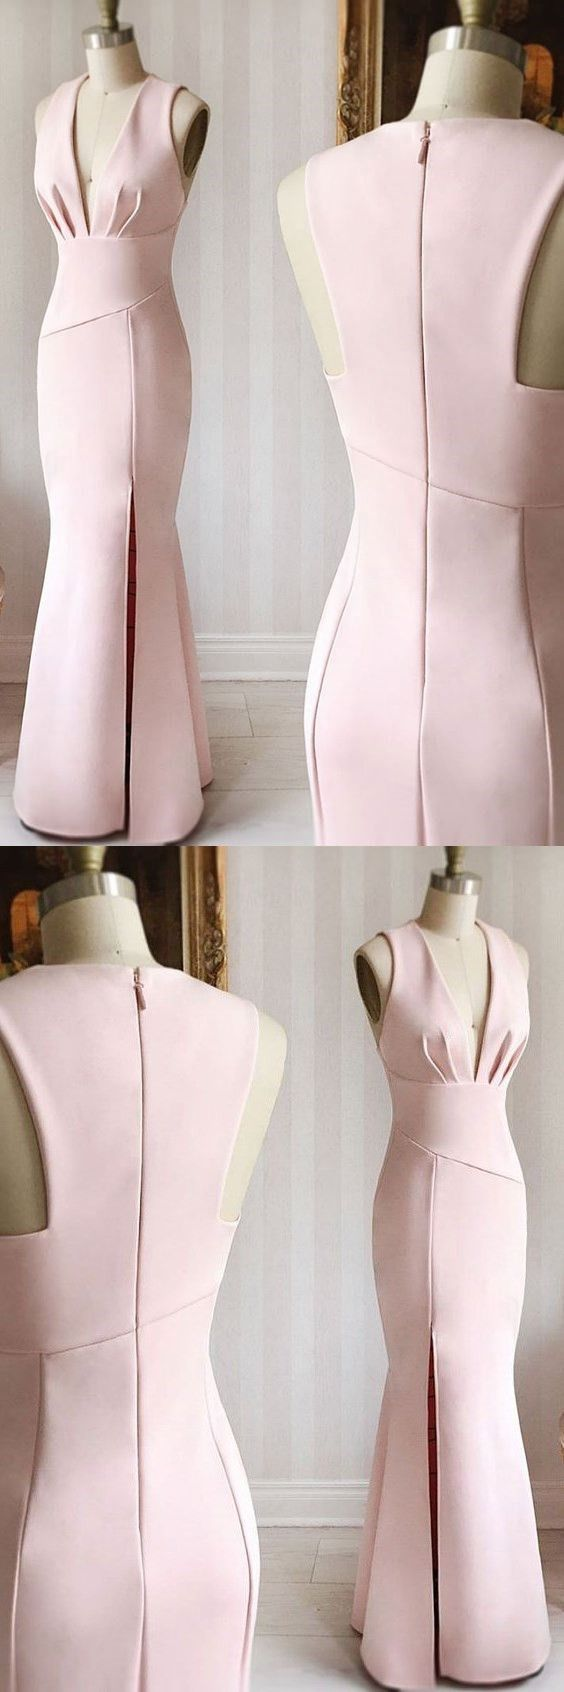 PINK SATIN MERMAID LONG PROM DRESS, PINK EVENING DRESS M0846#prom #promdress #promdresses #longpromdress #promgowns #promgown #2018style #newfashion #newstyles #2018newprom#eveninggowns#pinksatinpromdress#mermaidpromdress#pinkeveningdress